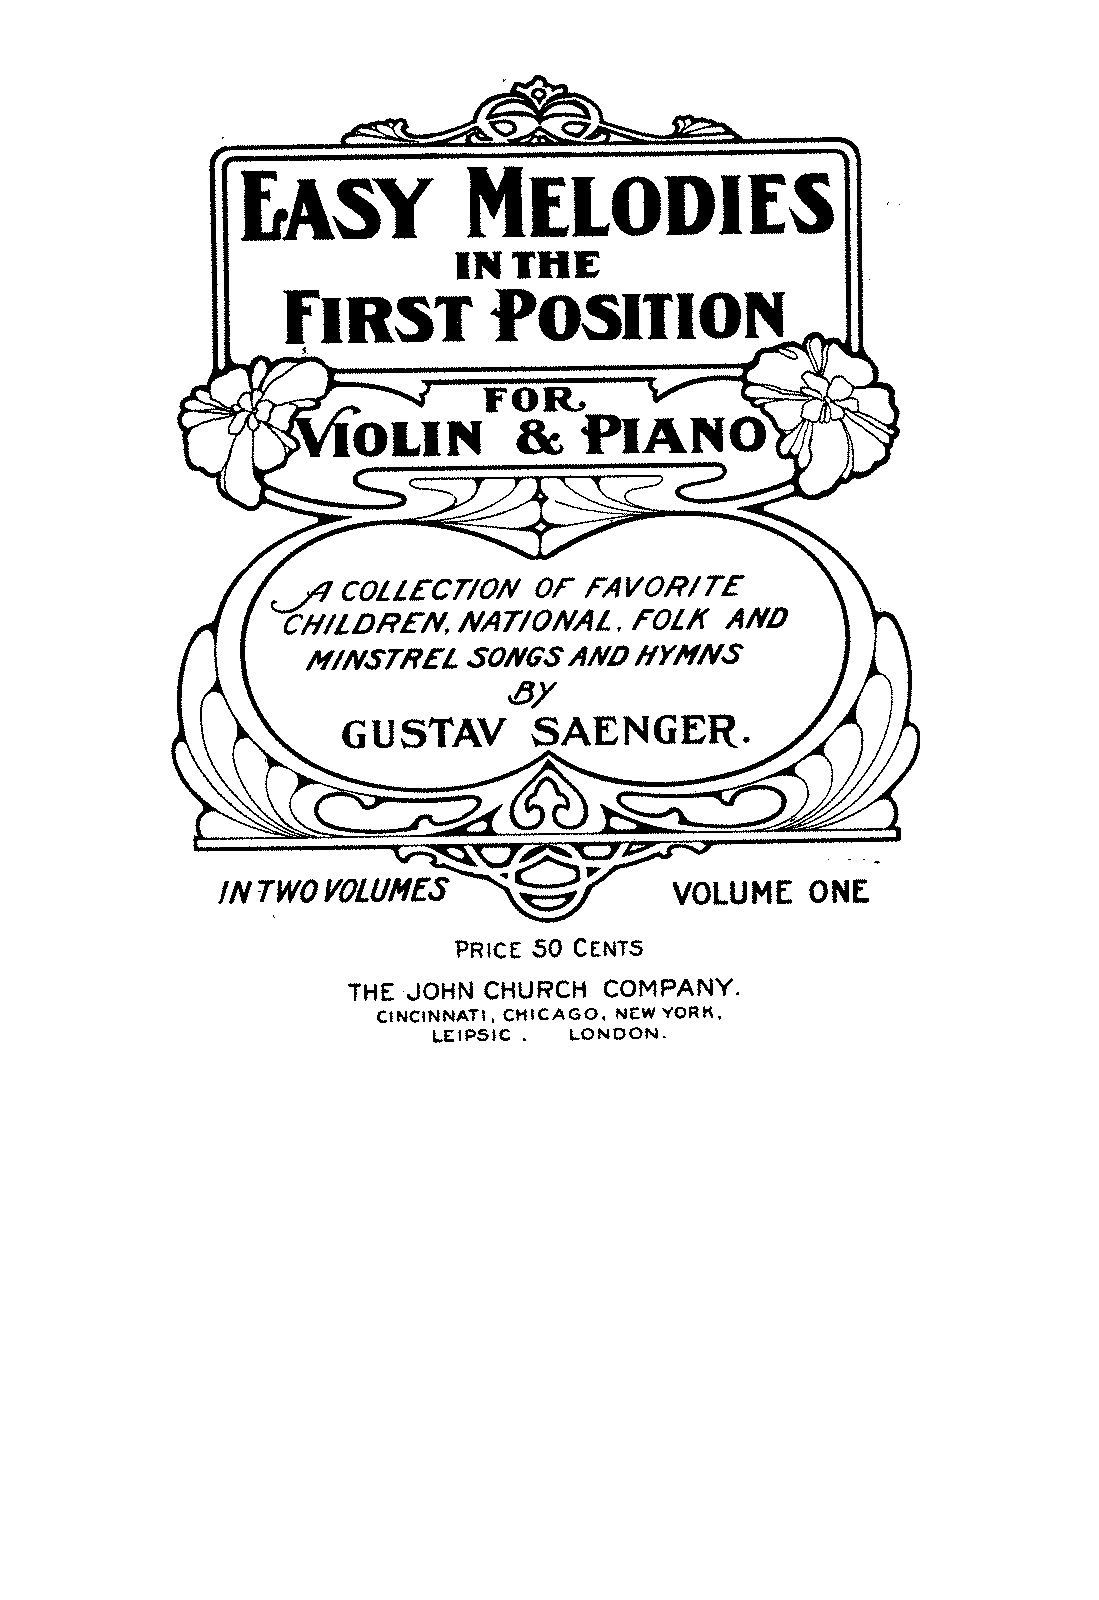 Easy Melodies in the First Position (Saenger, Gustav